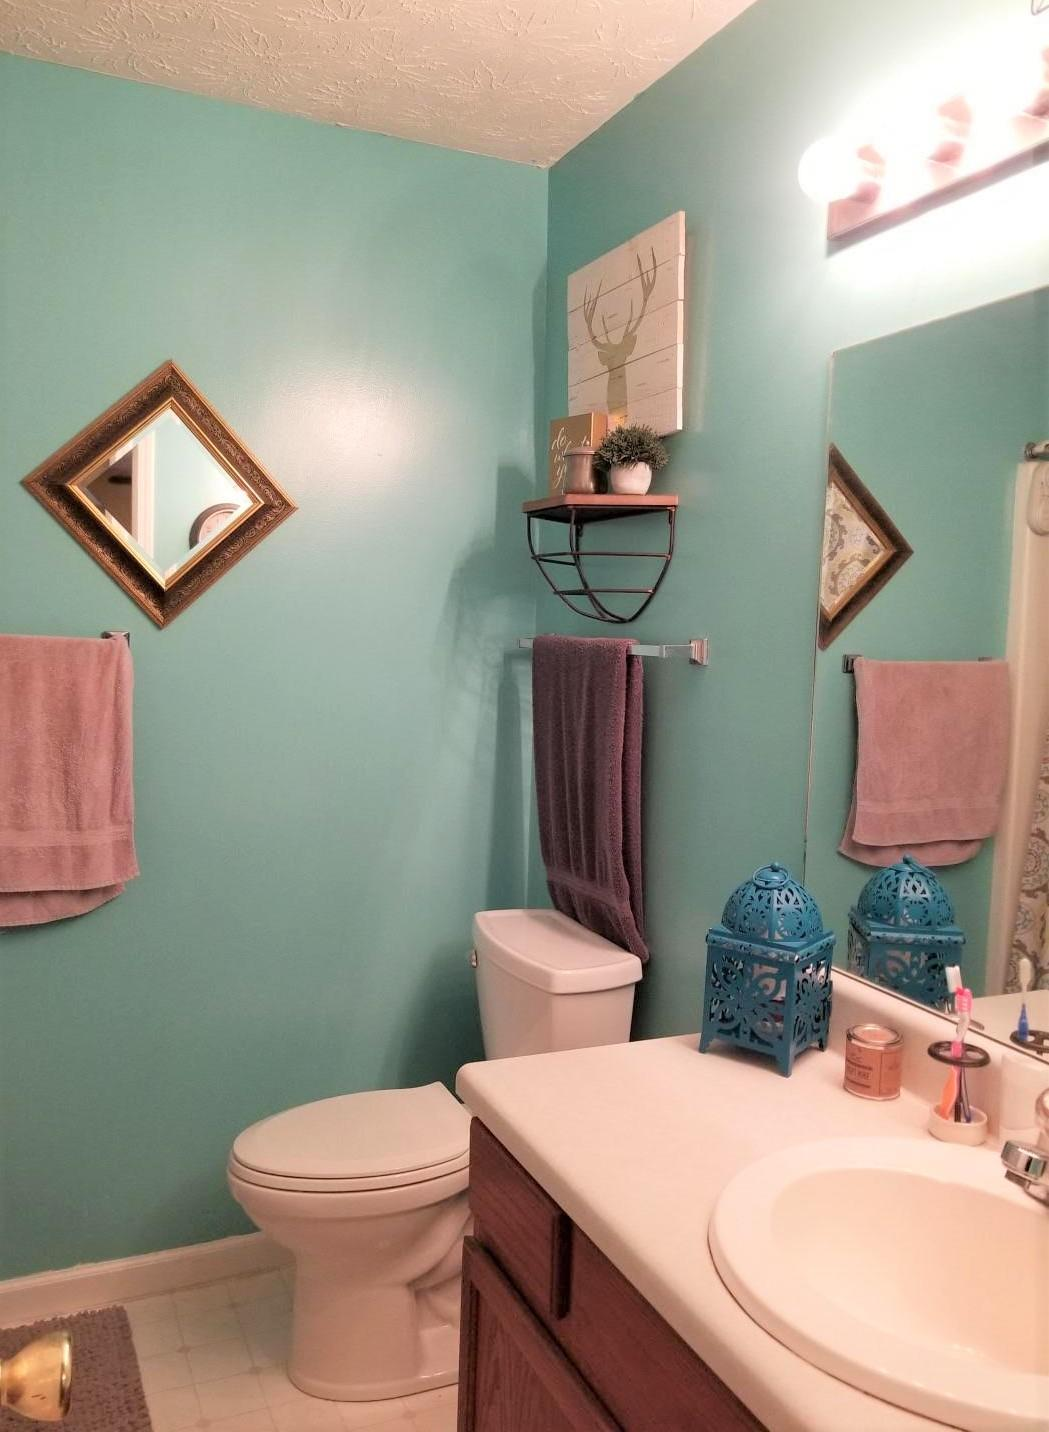 771 Settlers Pond Way, Knoxville, Tennessee 37923, 3 Bedrooms Bedrooms, ,2 BathroomsBathrooms,Single Family,For Sale,Settlers Pond,1063290